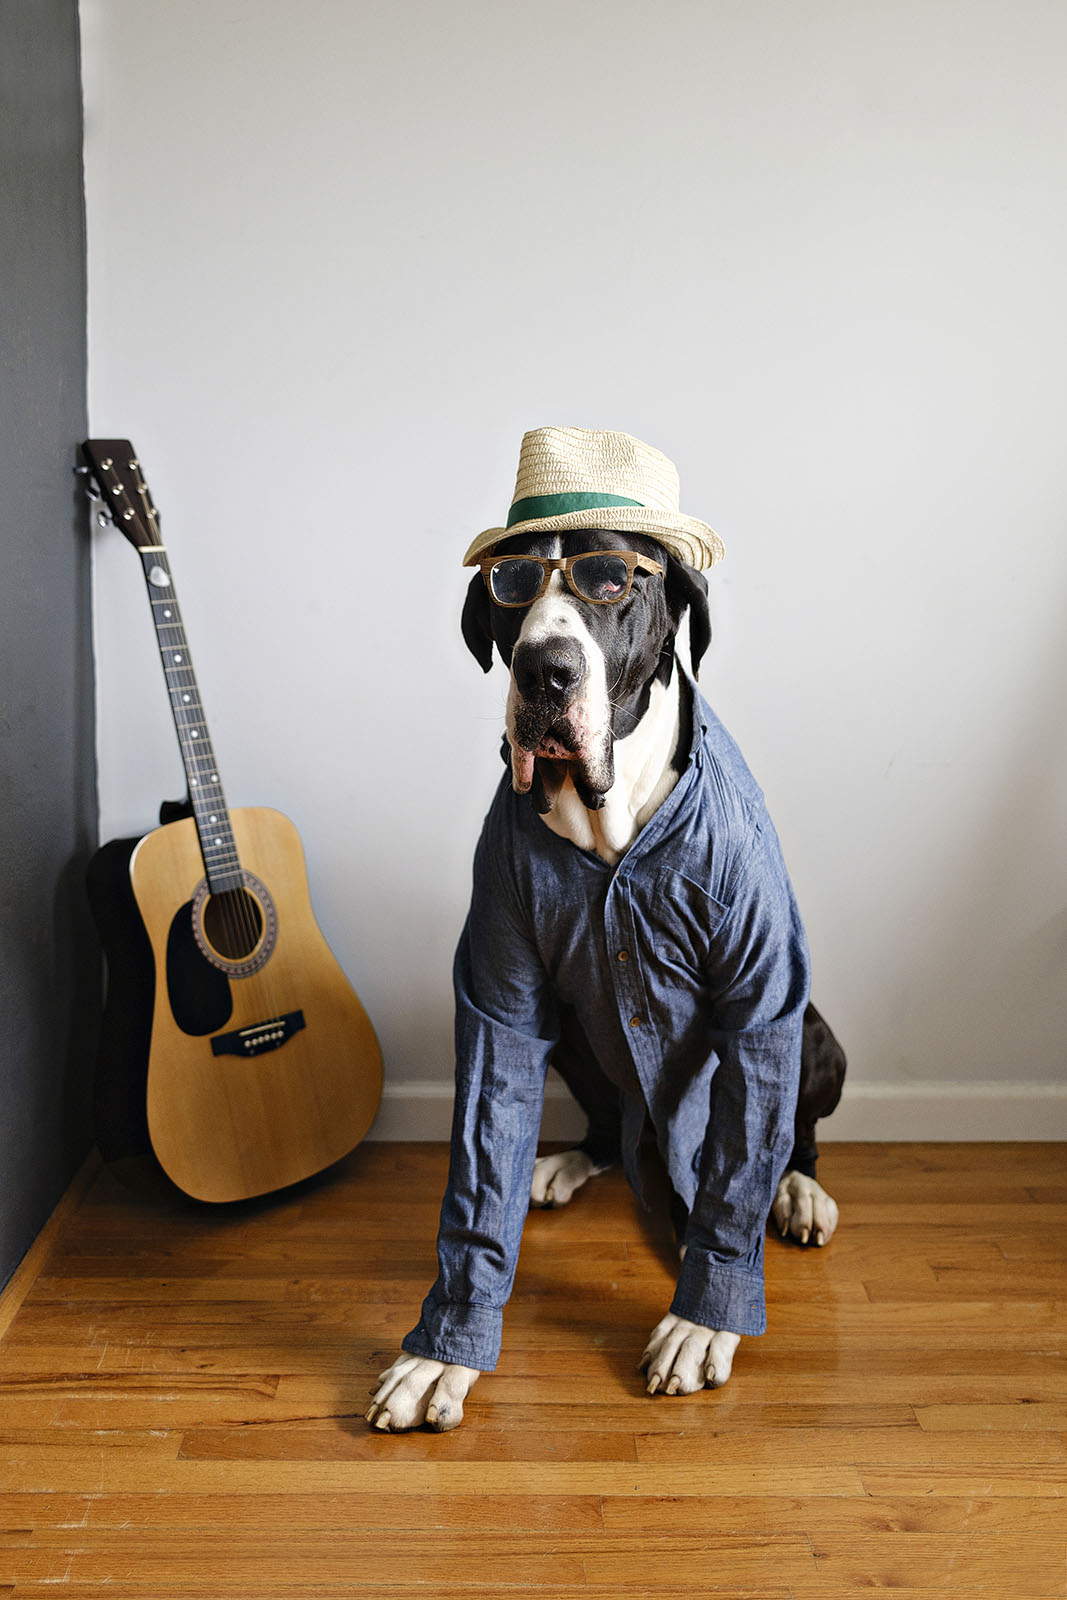 Funny dog photo of a great dane dressed as guitar player